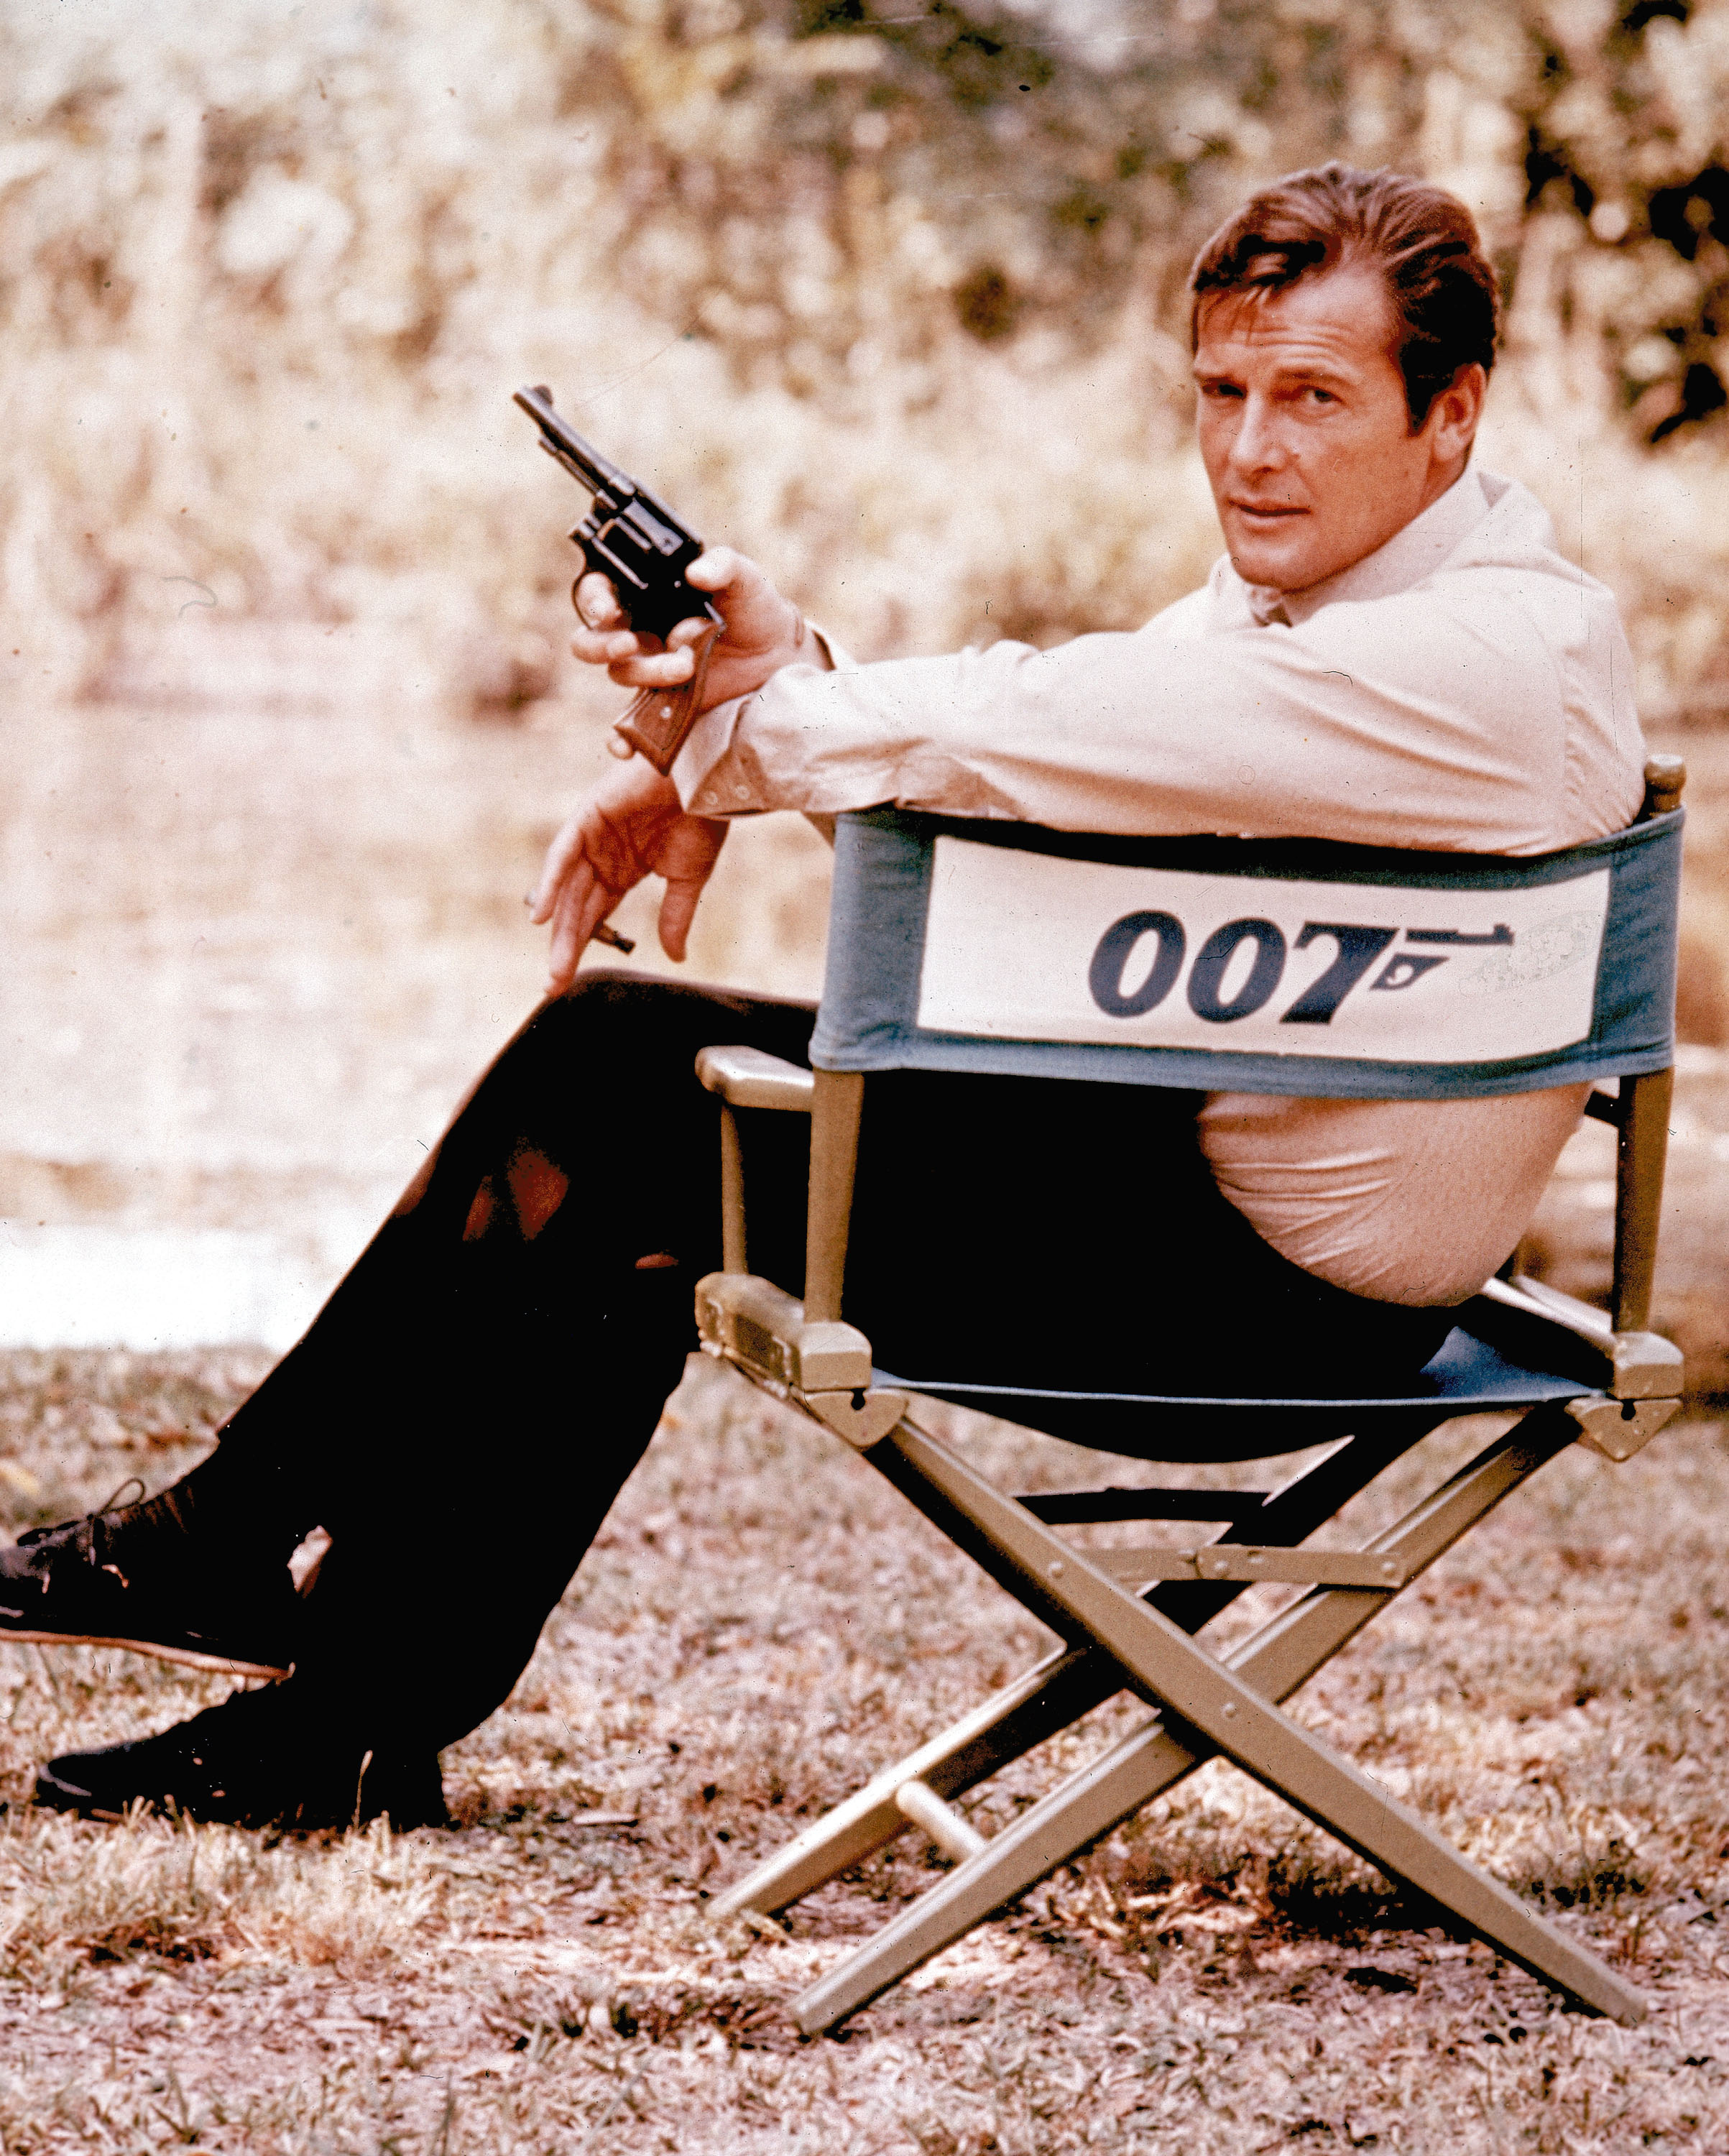 With an arched brow, Roger Moore found humor in Bond, life - Minot Daily News